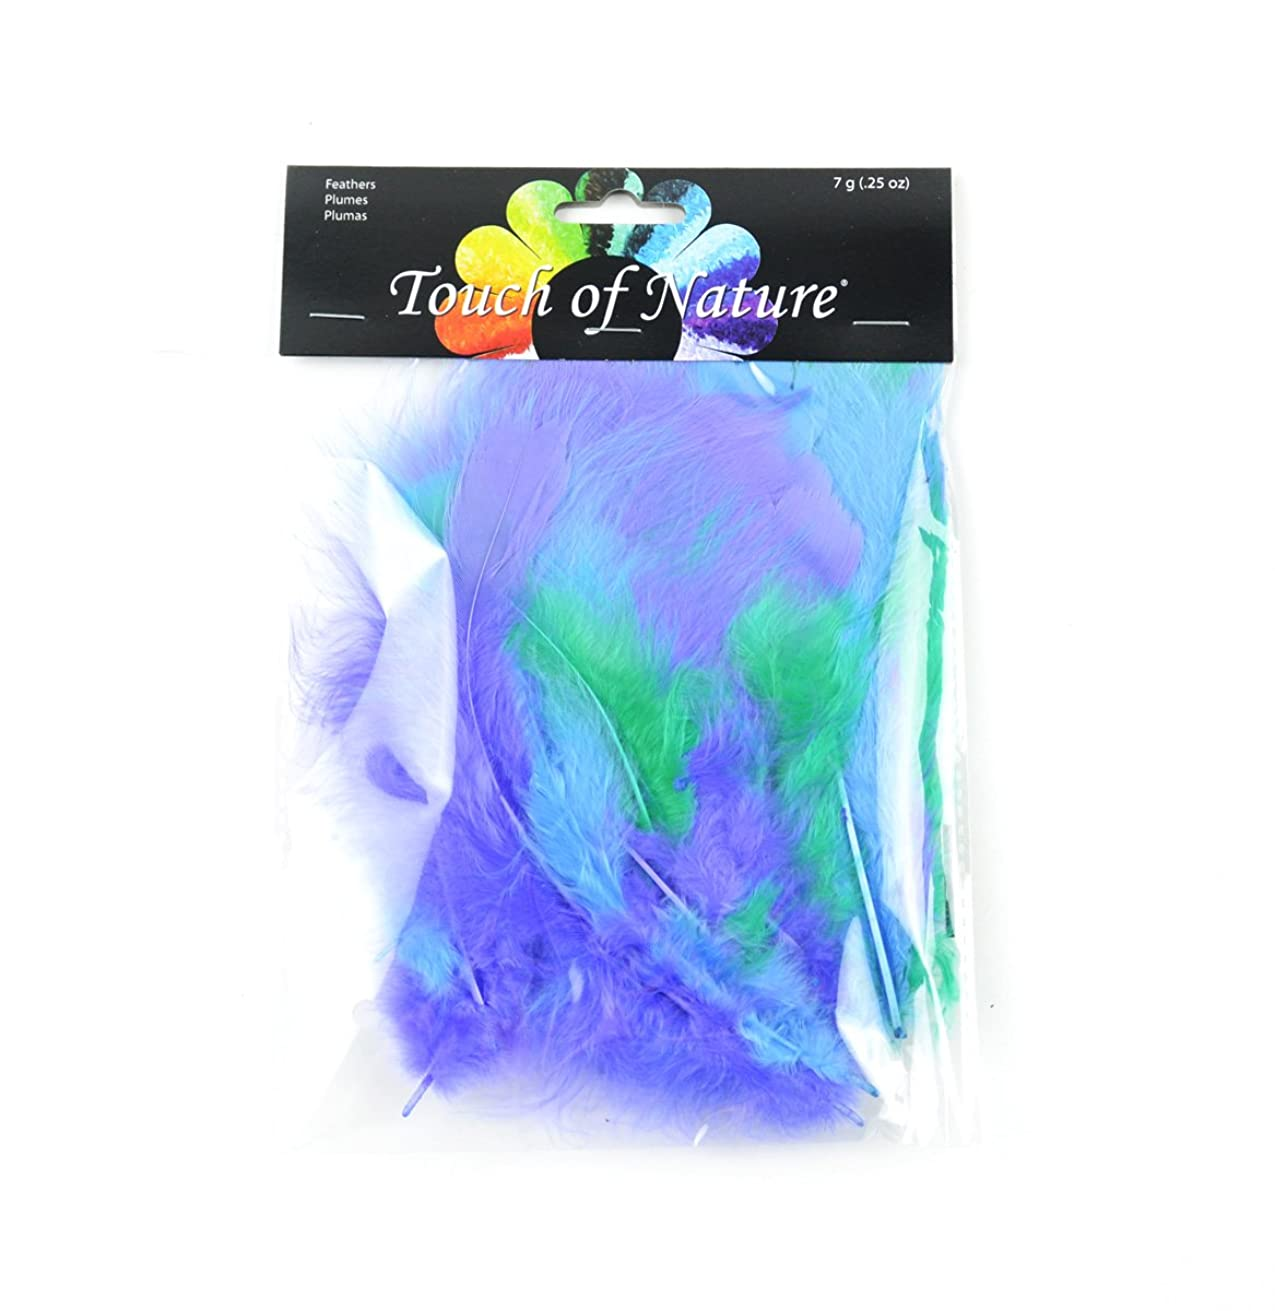 Touch of Nature 37106 Turkey Feathers Fluffy Mix, (Pack of 1), 7 g, Seafoam/Cornflower